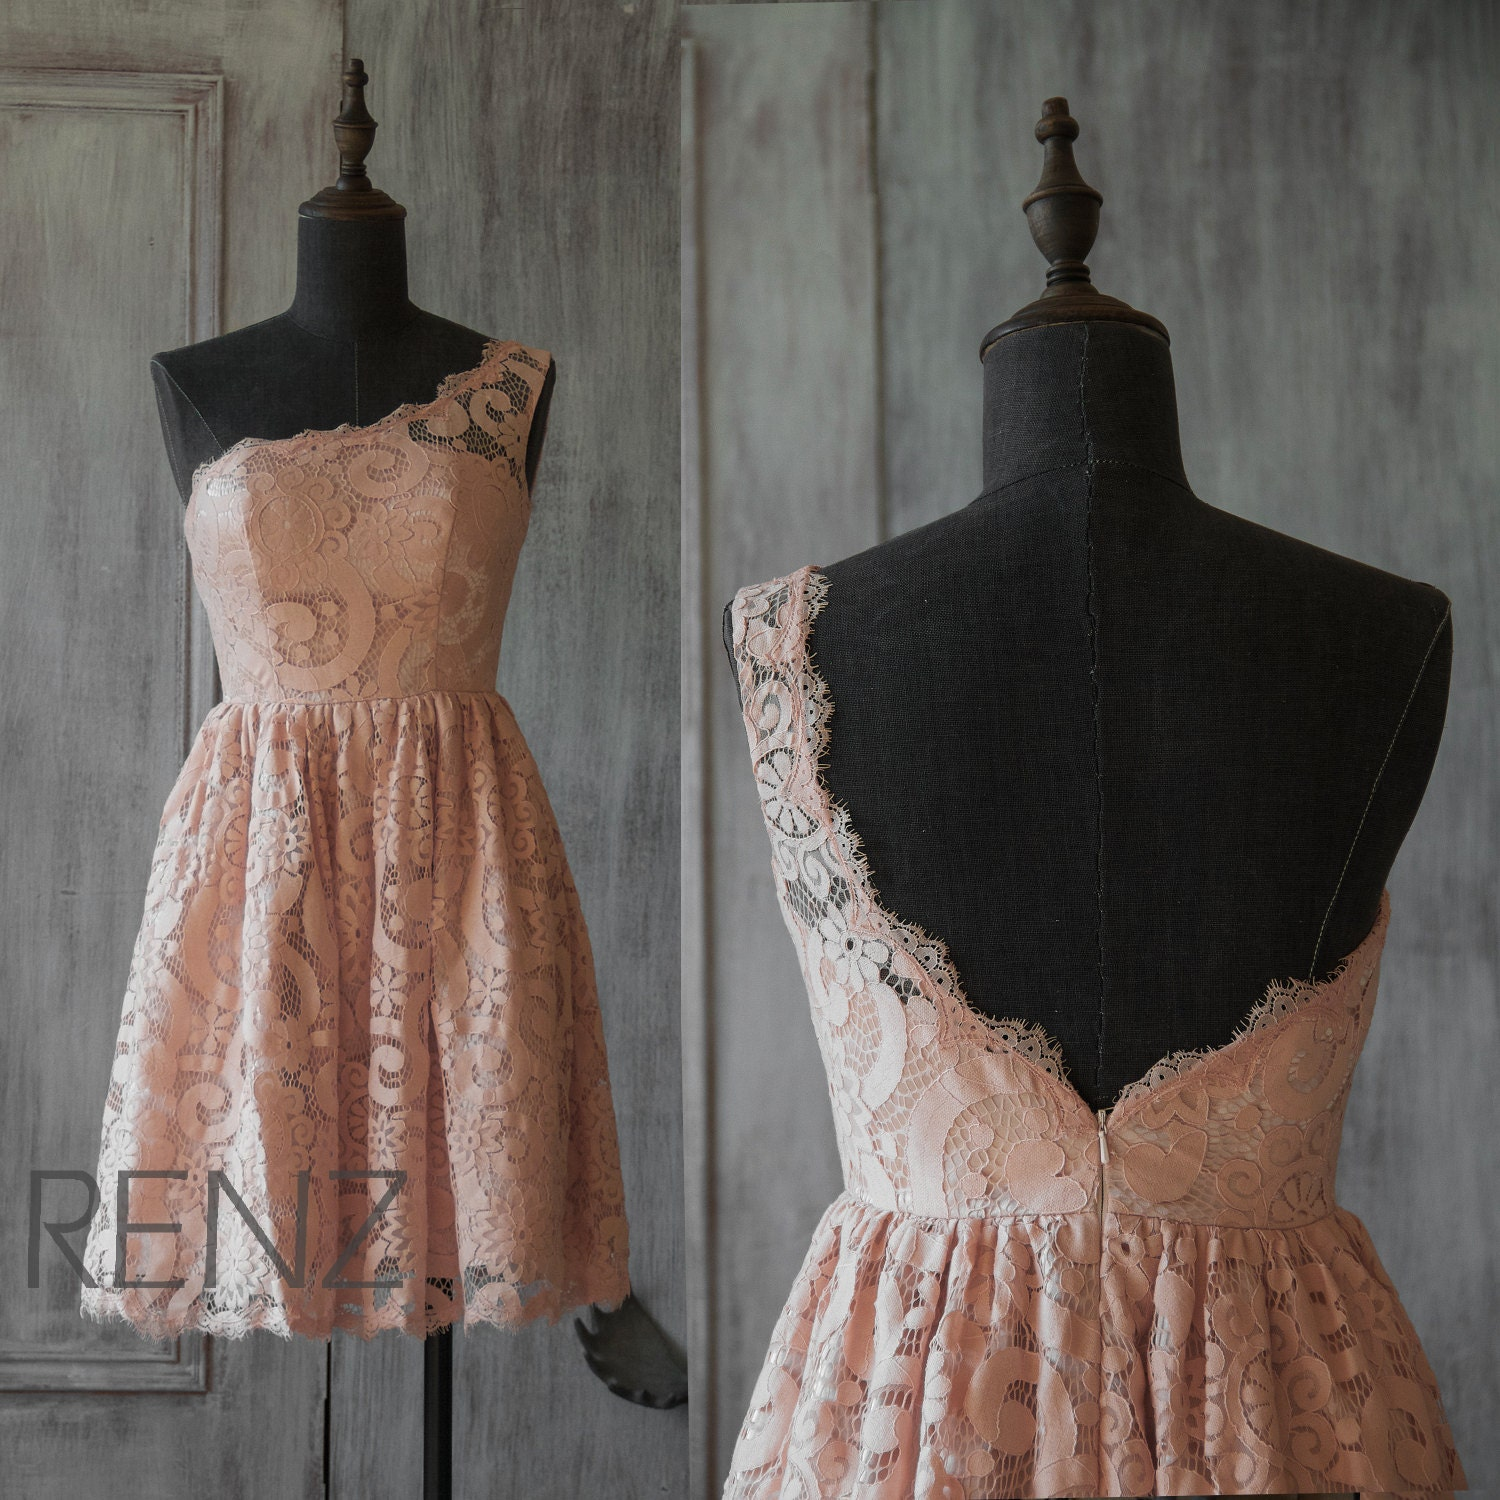 2016 Peach Lace Bridesmaid Dress One Shoulder Wedding By